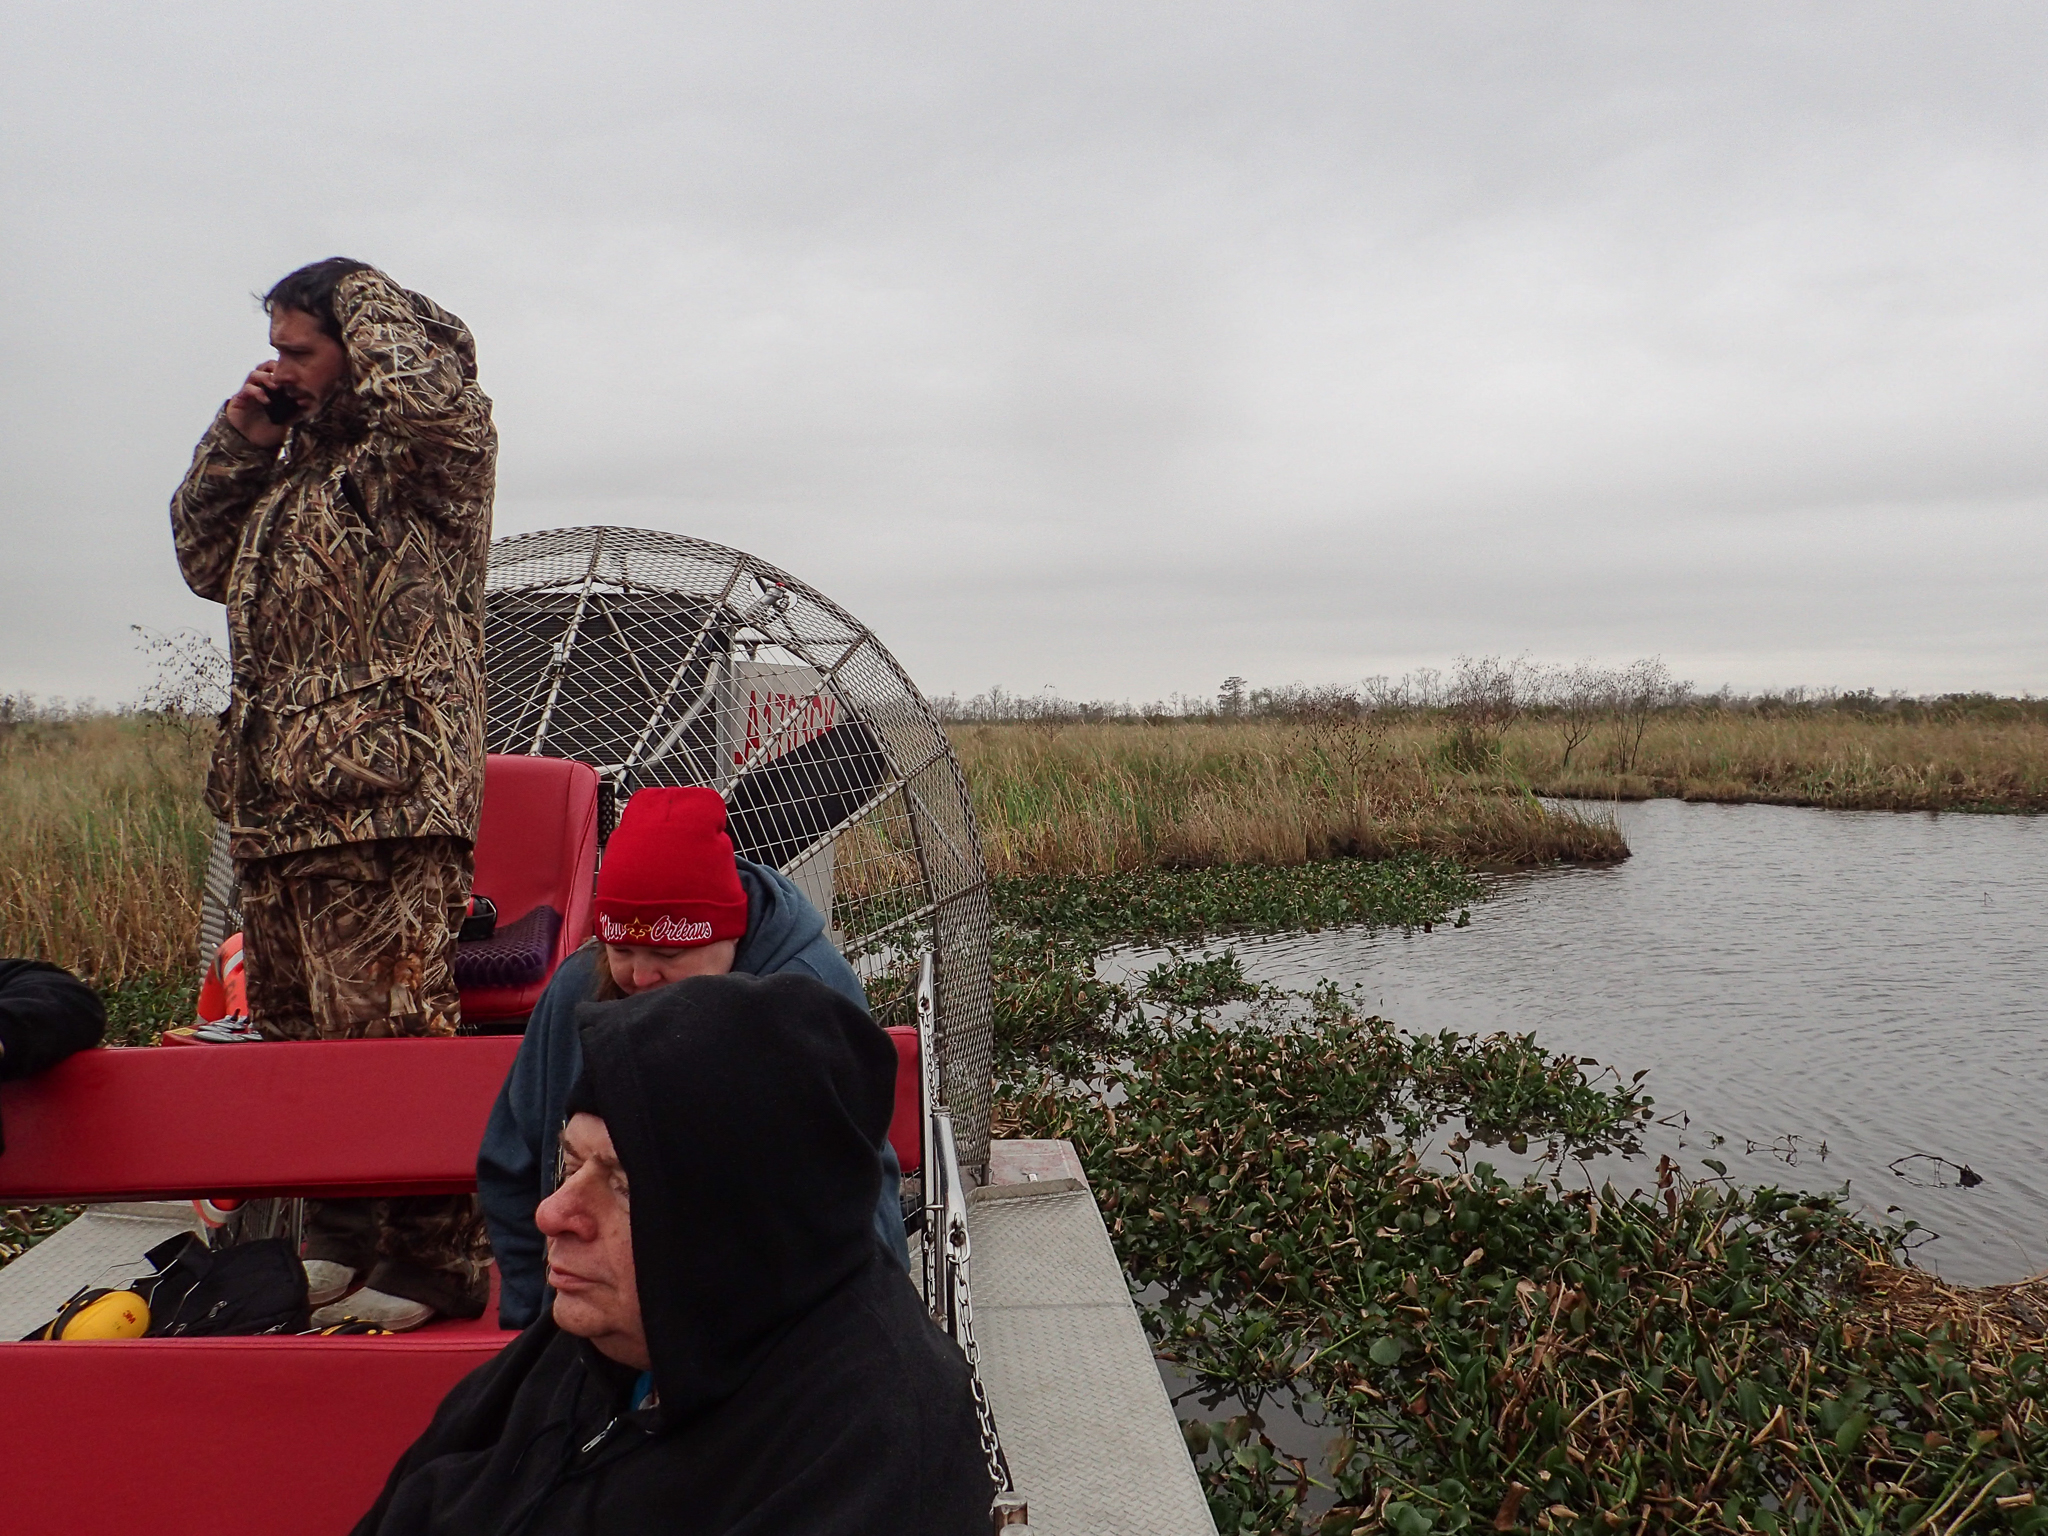 A swamp tour into the bayou from New Orleans